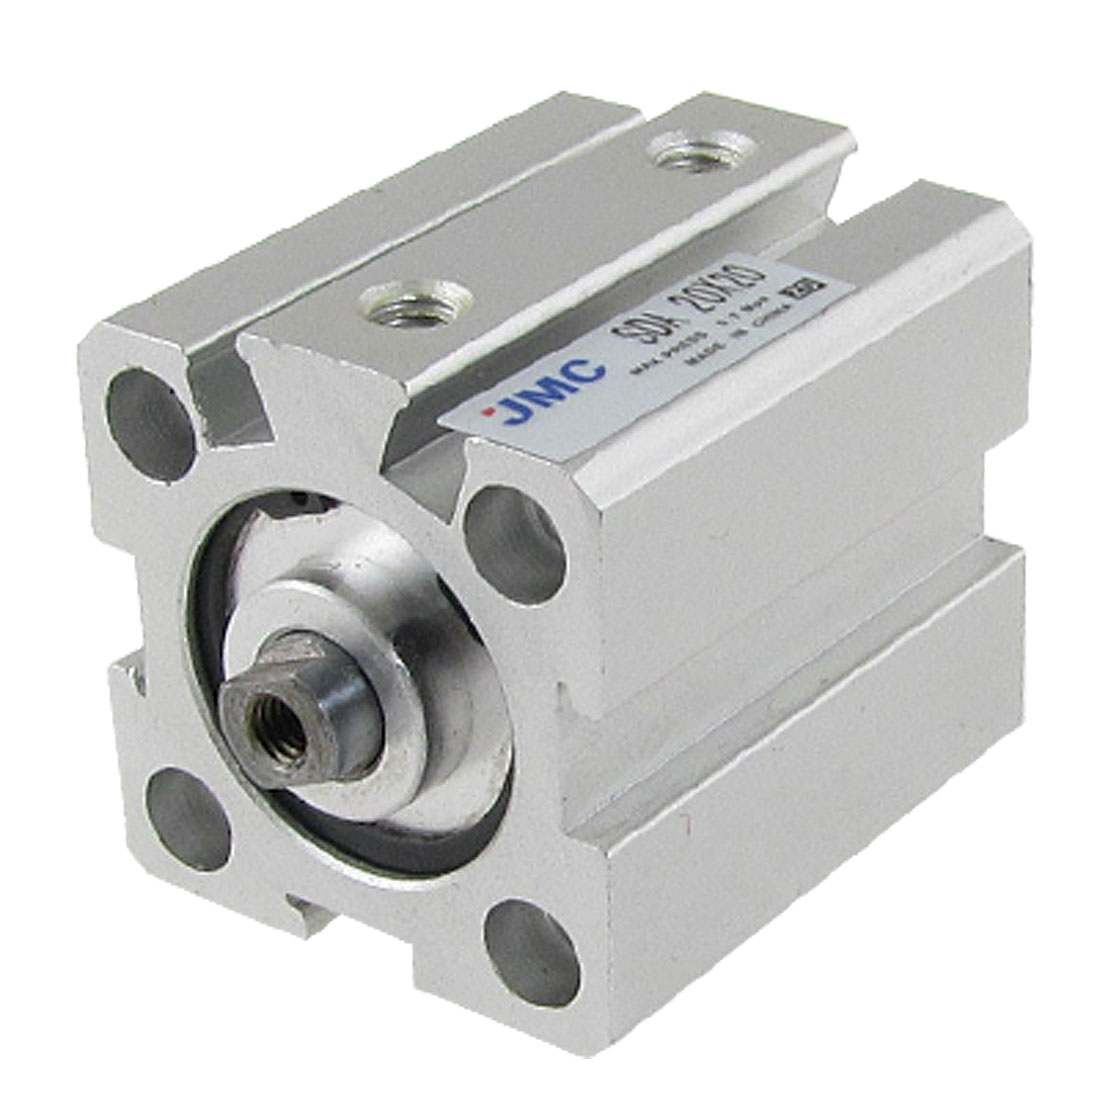 20mm Bore 20mm Stroke Double Action Pneumatic Thin Cylinder